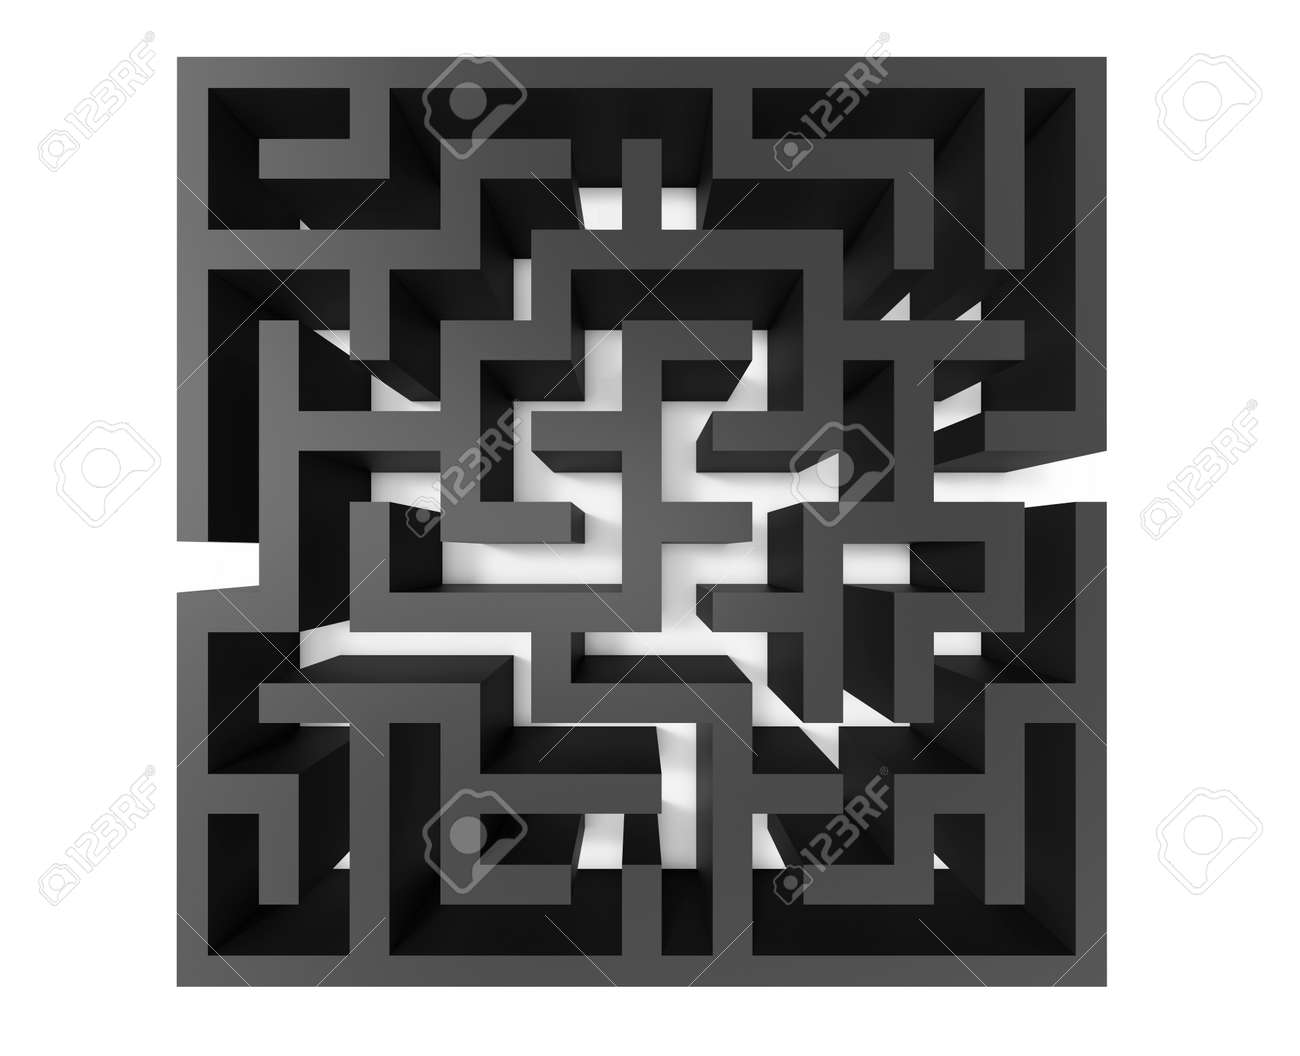 3d Rendering Maze, Top View Of Black Square Maze Template, Labyrinth ...